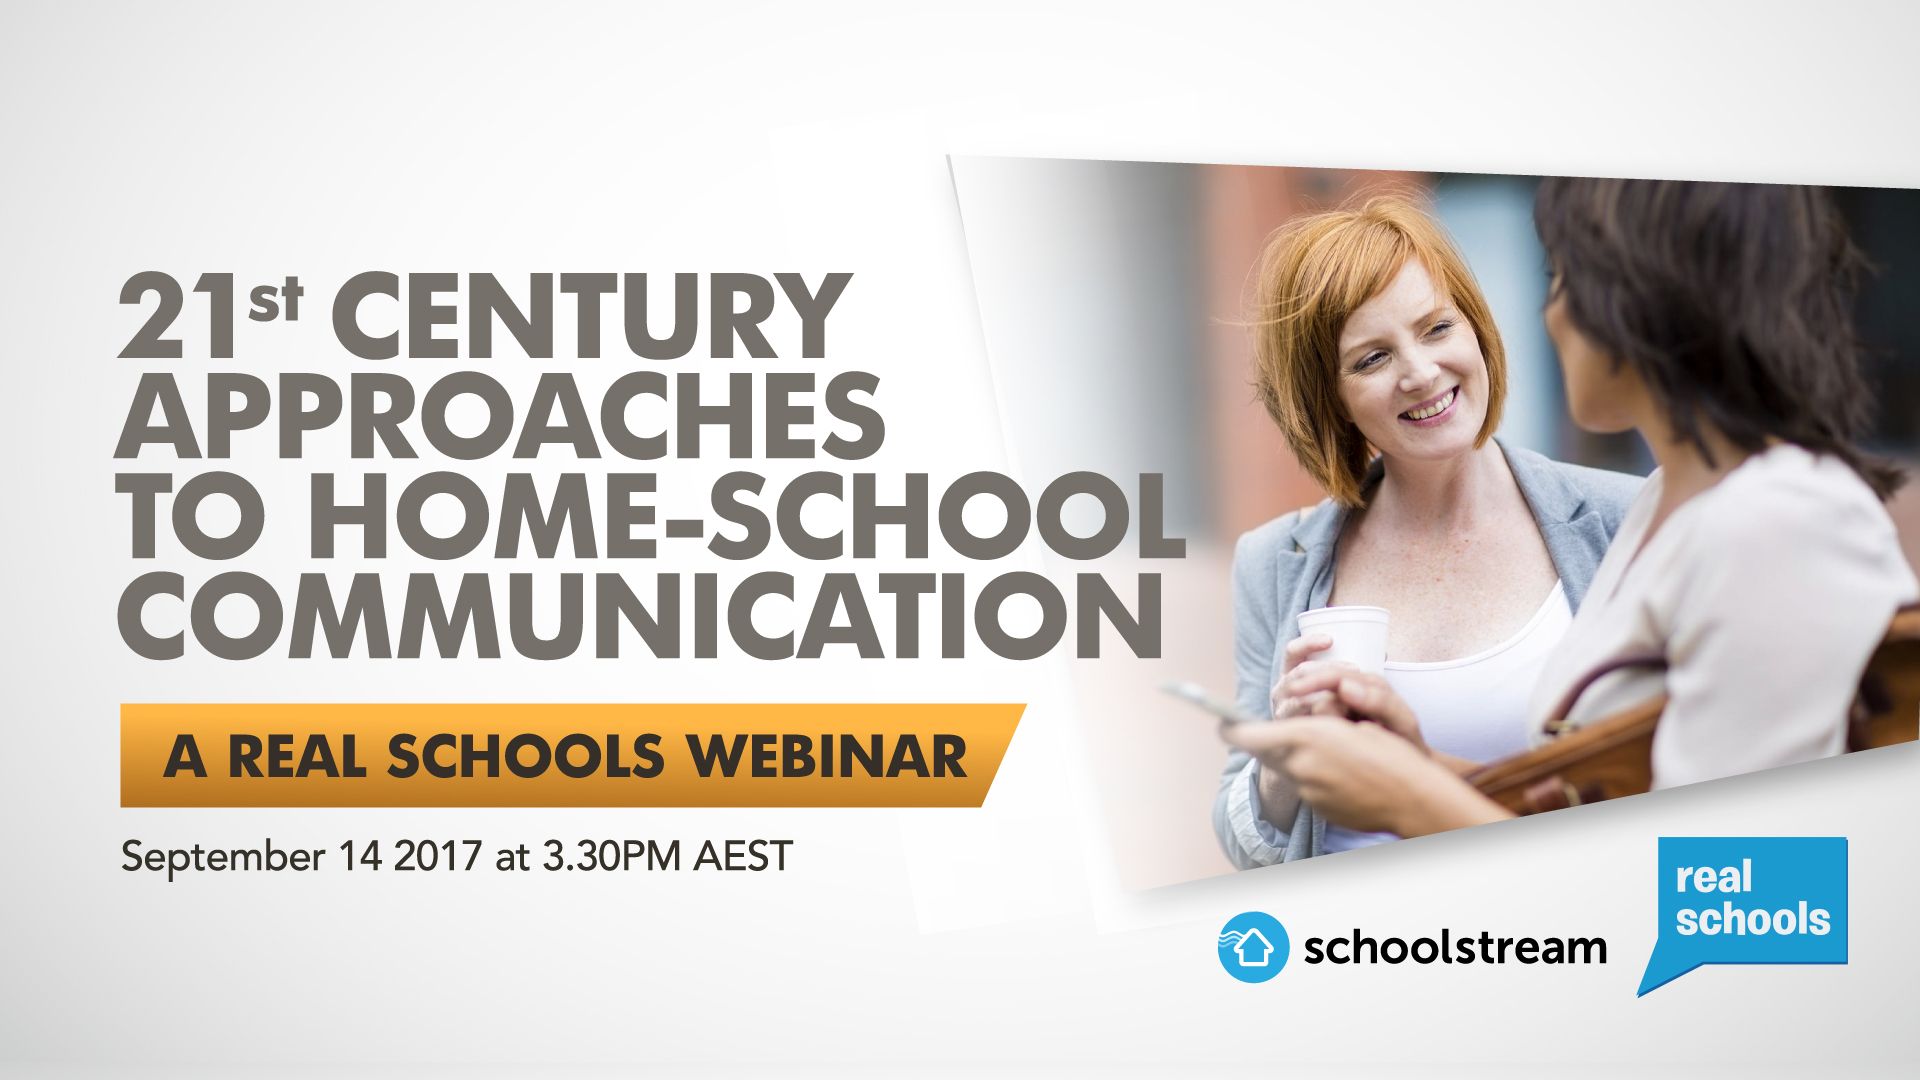 21st-Century-Approaches-to-Home-School-Communication